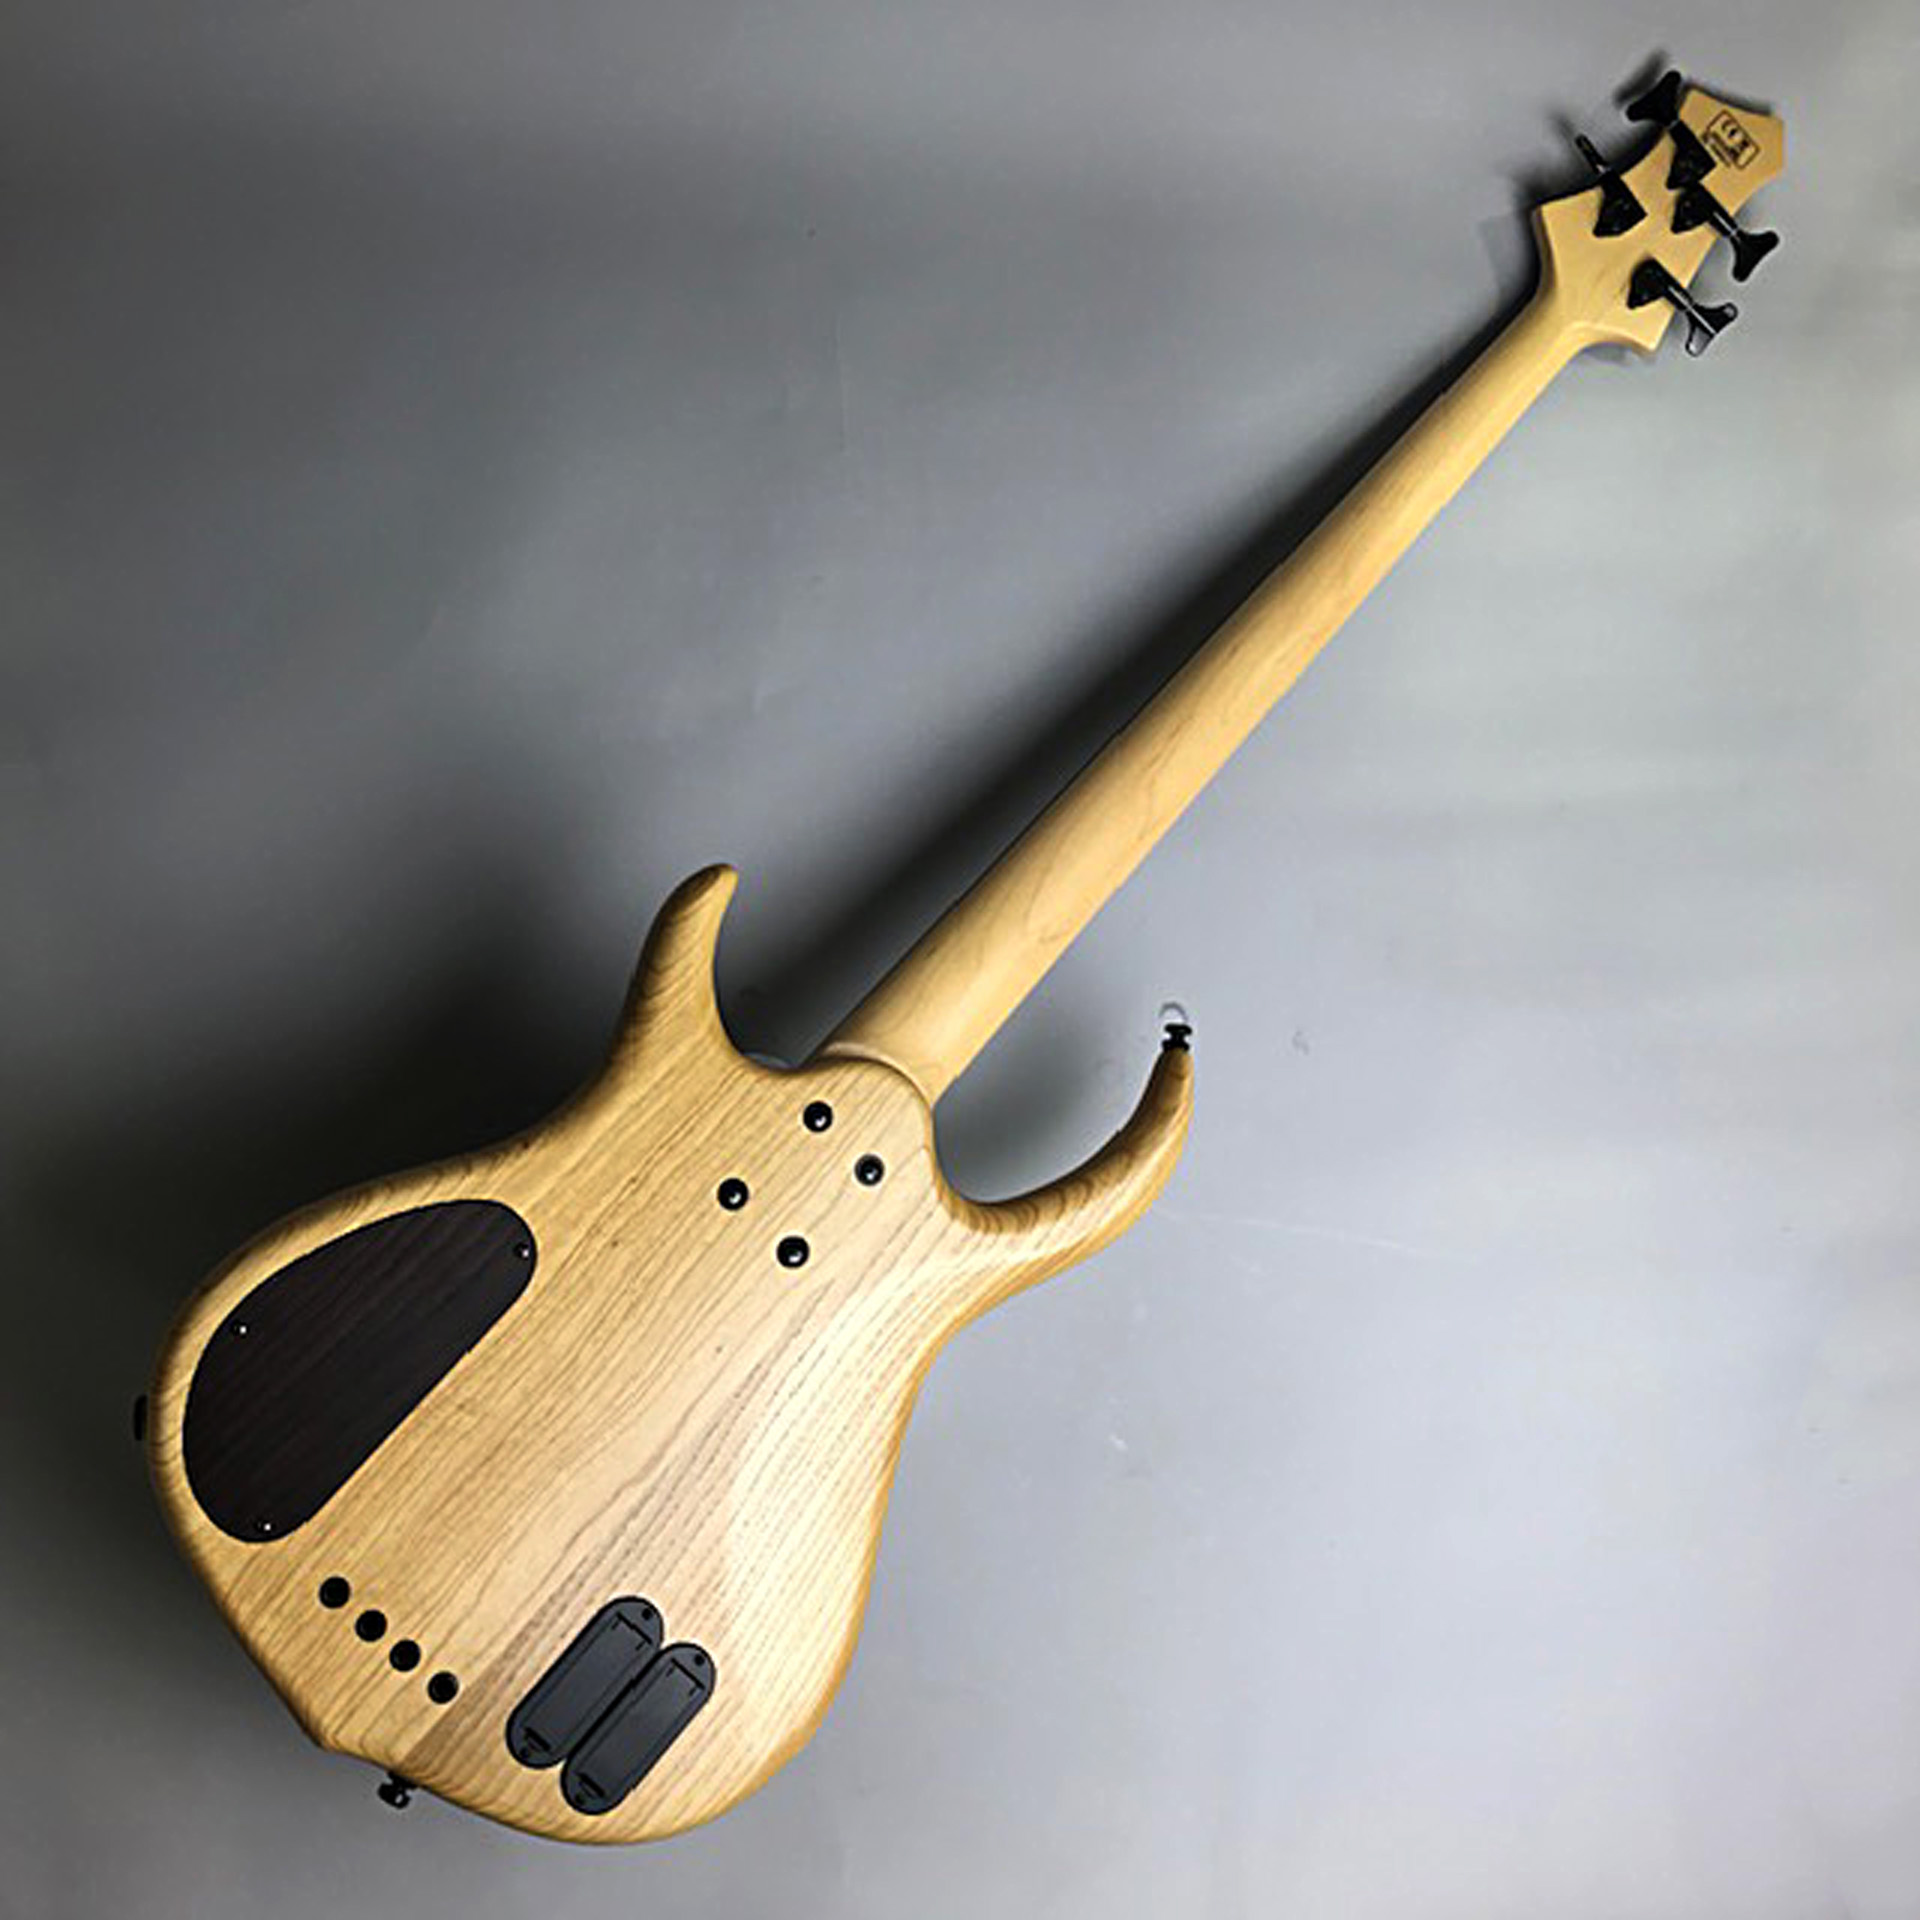 M7 4ST SwanpAsh+Maple Fretless(S/N:16360274)のヘッド裏-アップ画像